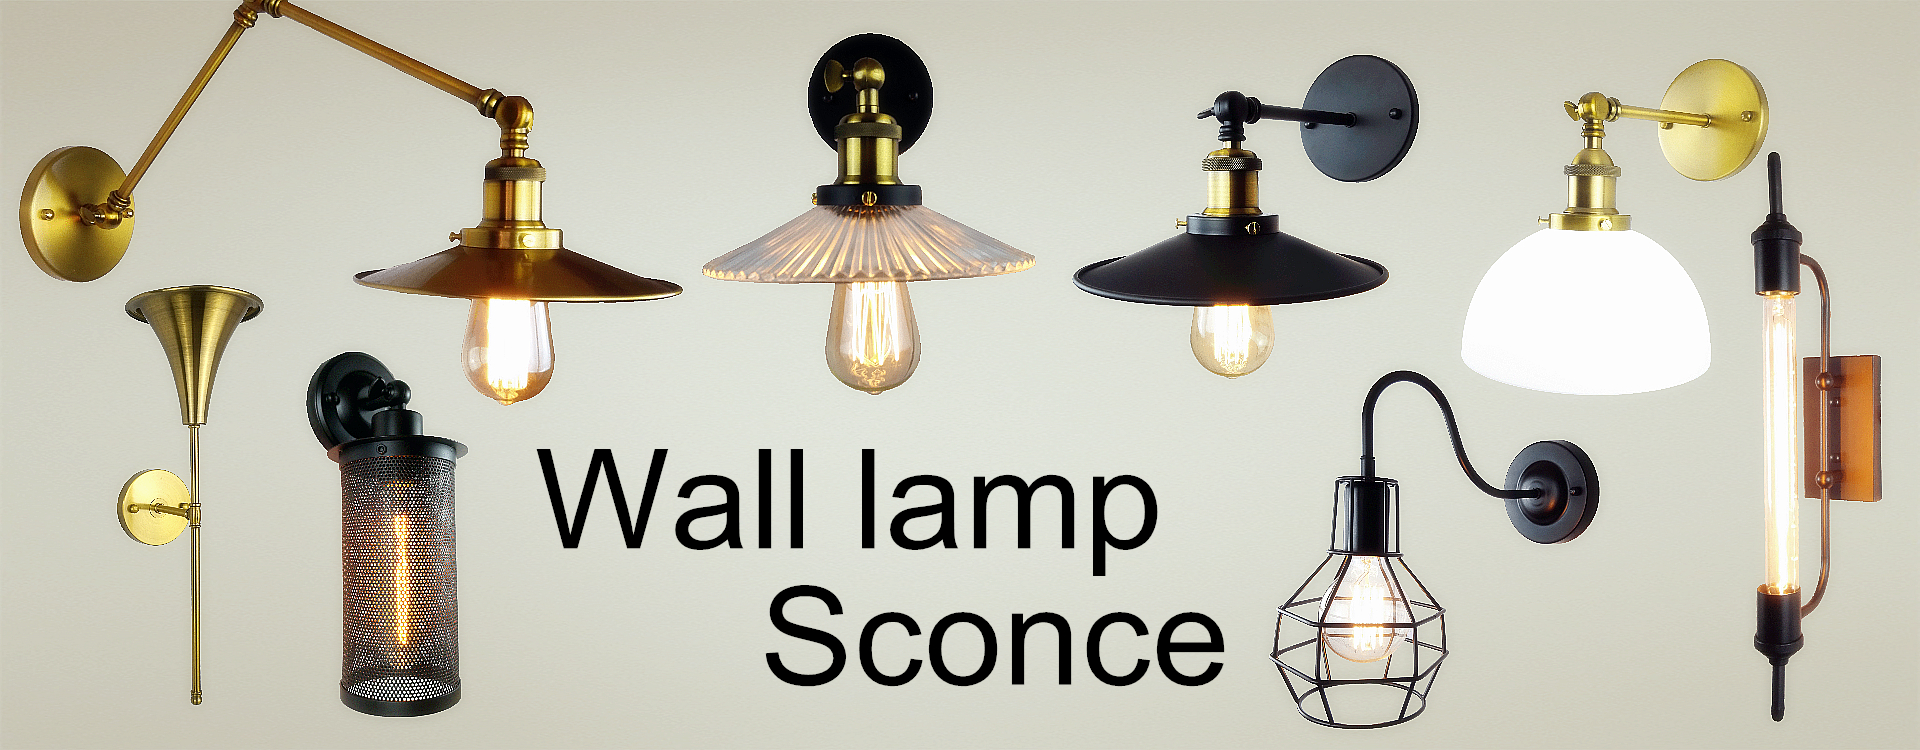 Dream House Decoration Co.,Ltd   Small Orders Online Store, Hot Selling And  More On Aliexpress.com